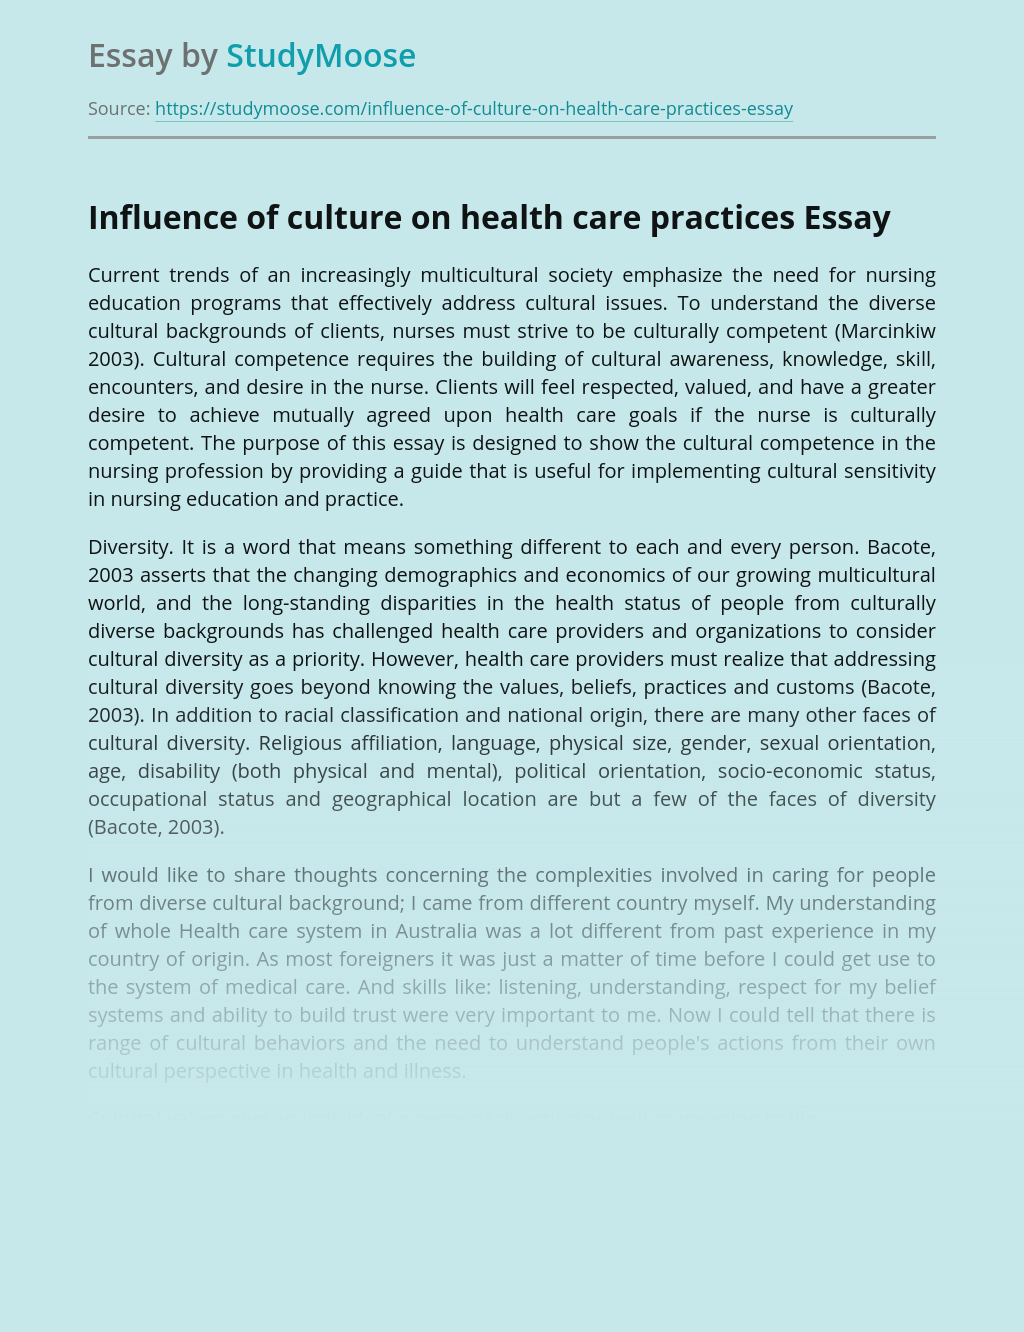 Influence of culture on health care practices